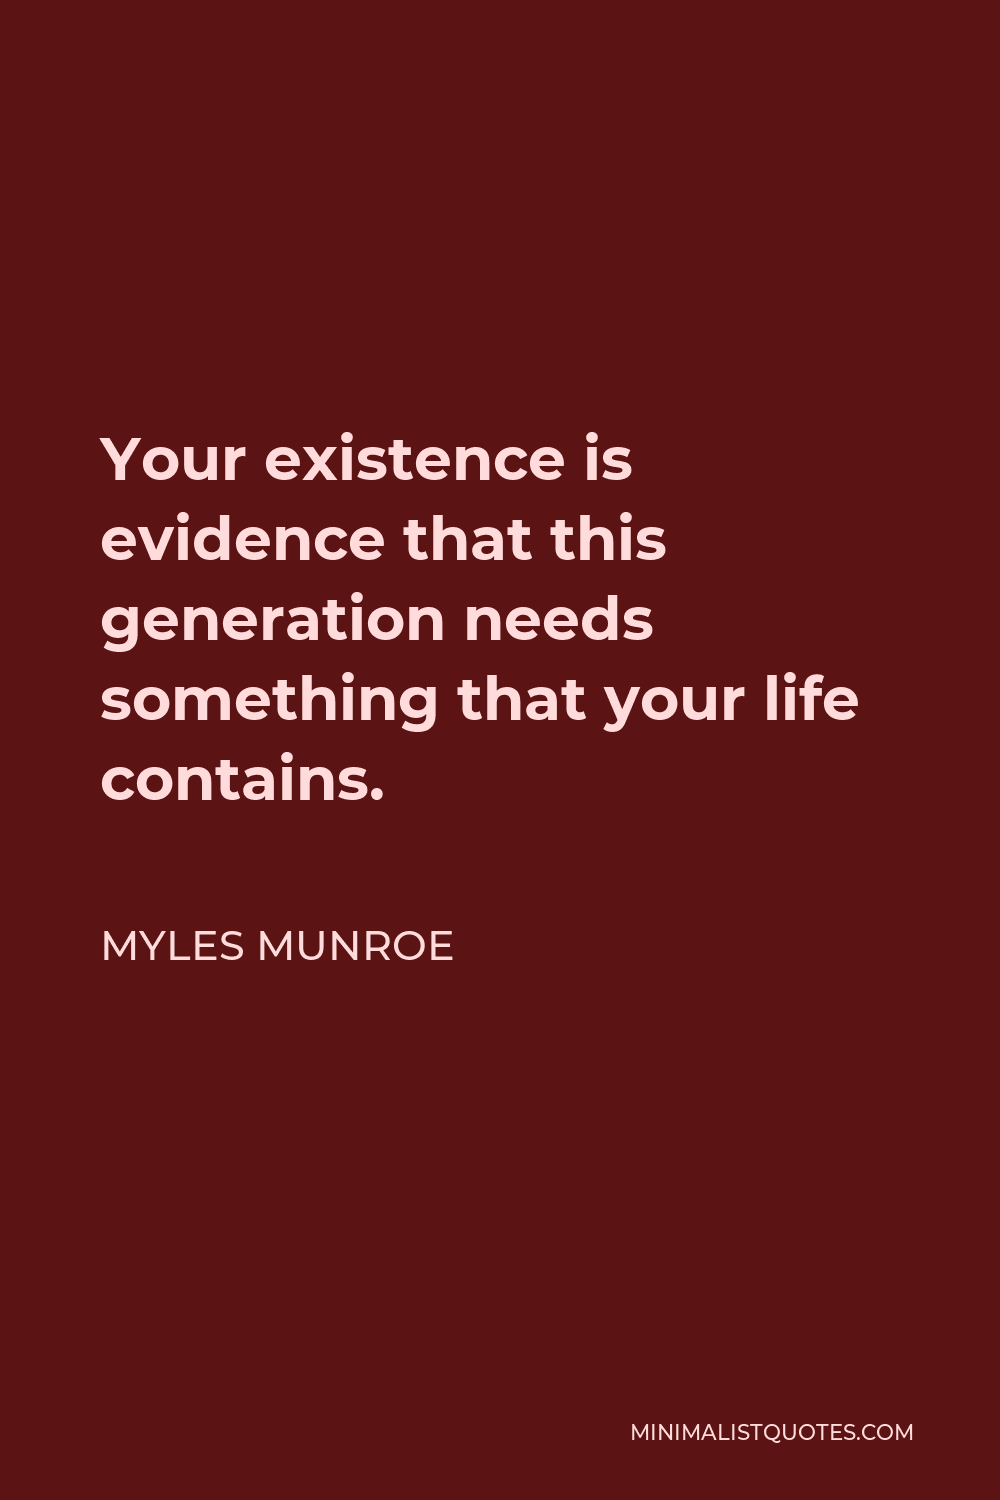 Myles Munroe Quote - Your existence is evidence that this generation needs something that your life contains.